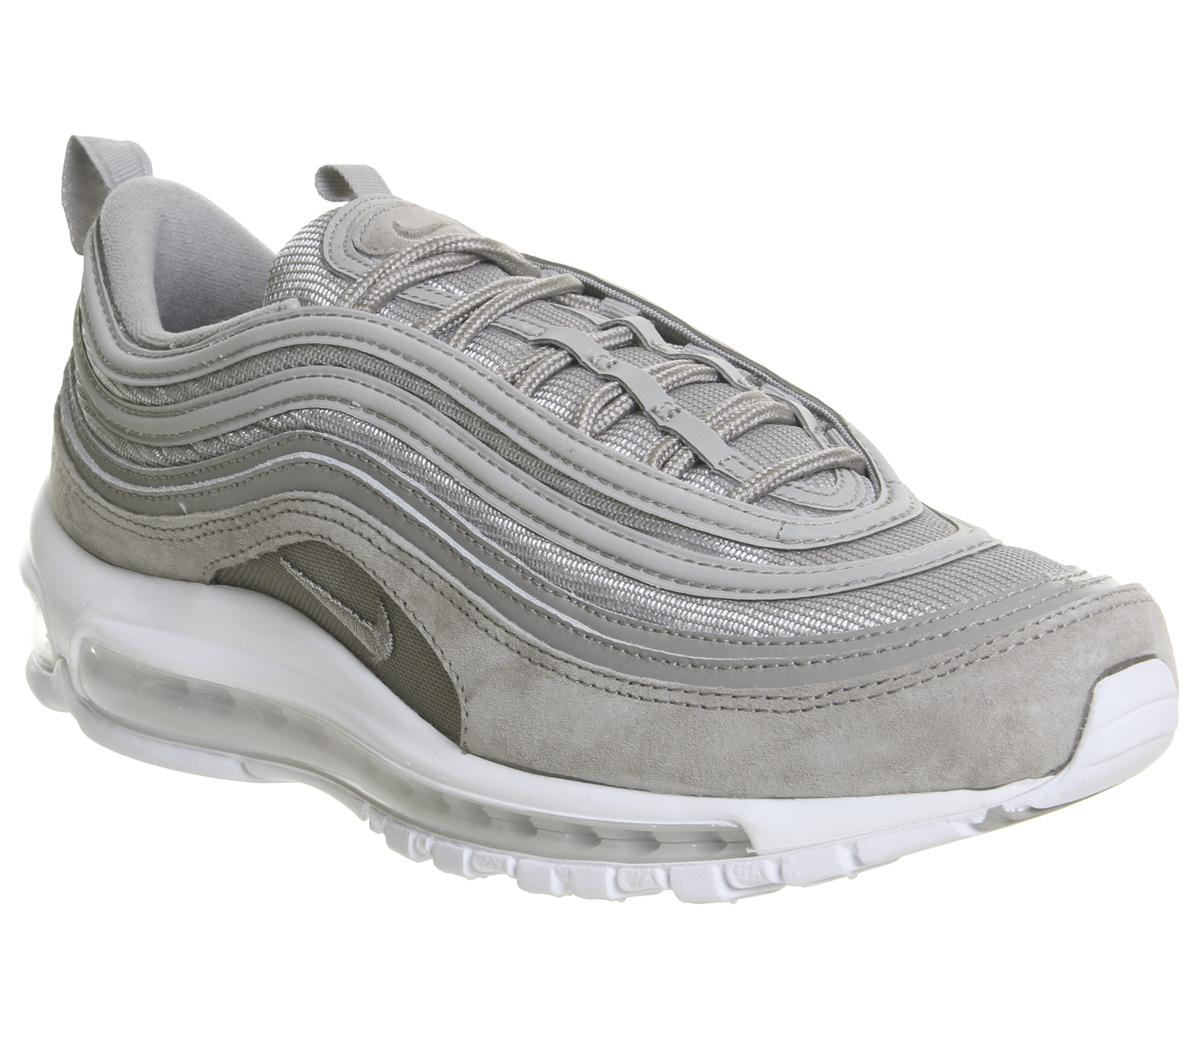 Women's Nike Air Max 97 In Cobblestone Trainer | Shoes in